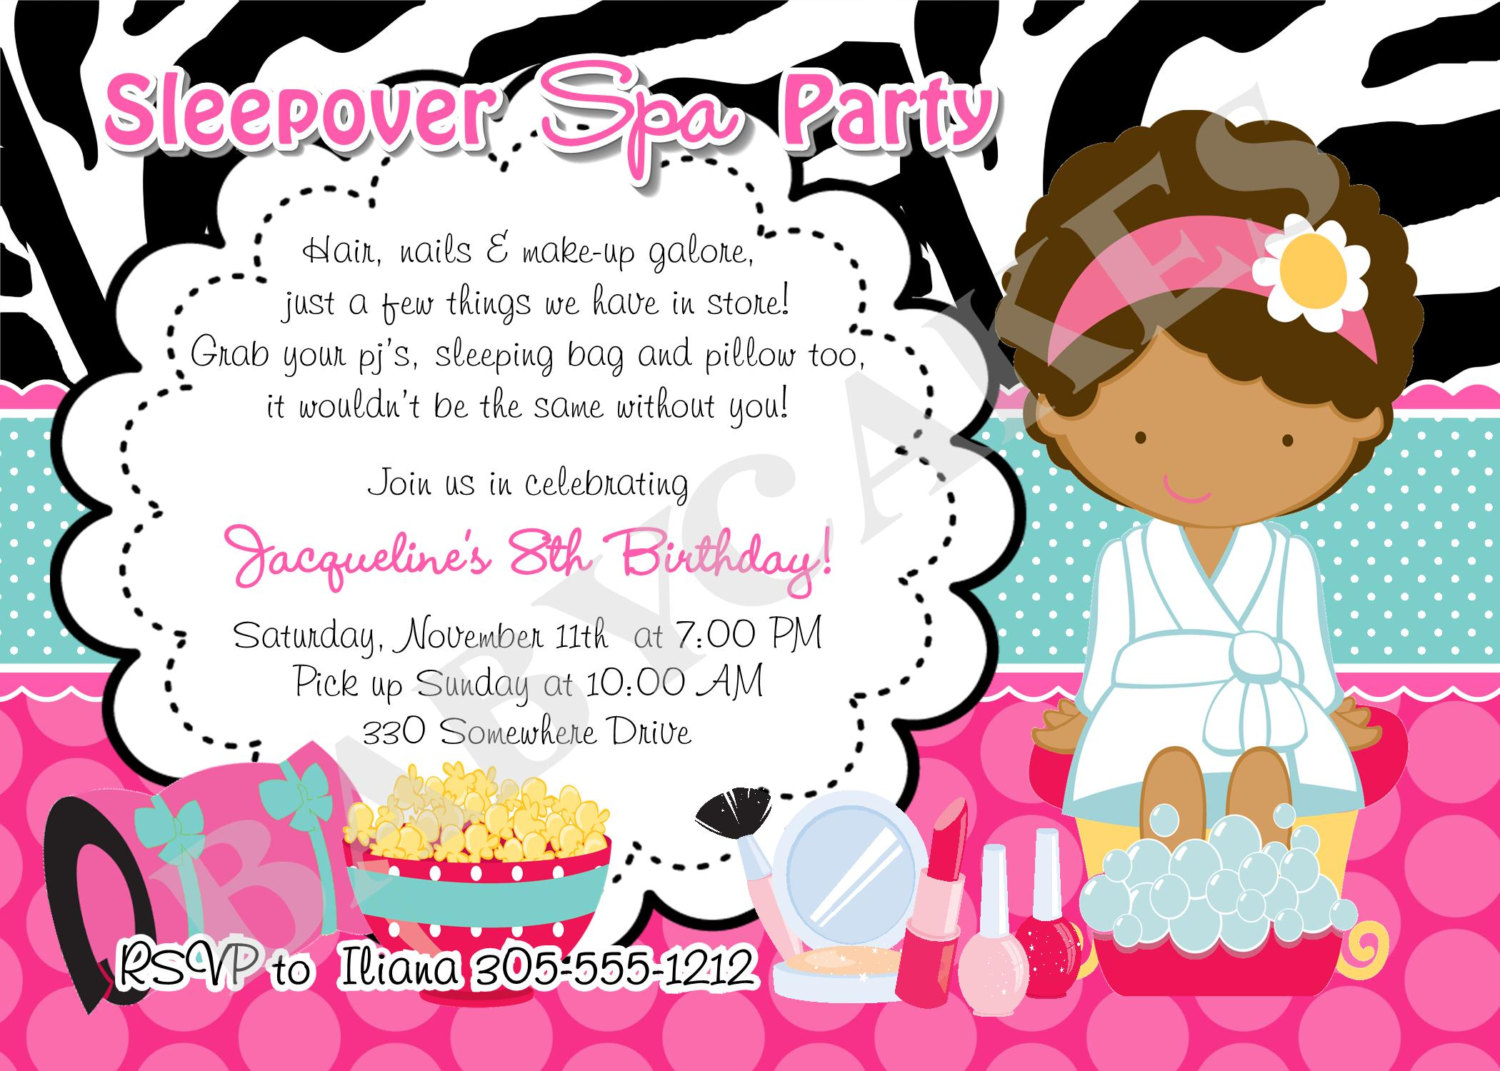 free printable birthday sleepover invitation templates ; superb_slumber_party_invitation_template_along_modest_article_2_5